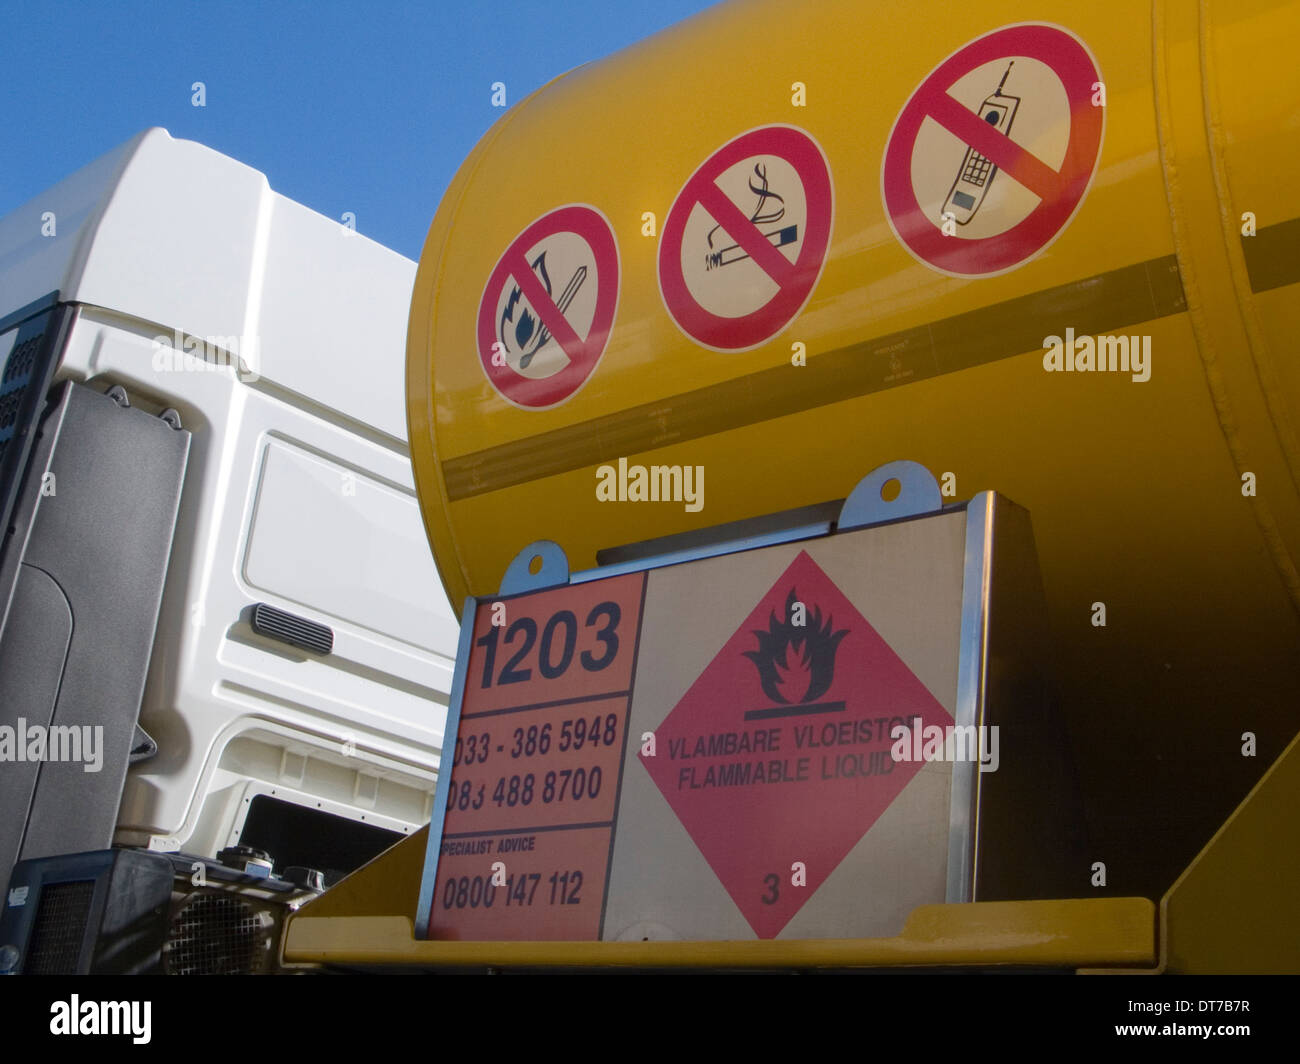 symbolic safety signs flammable liquid, pv2 fire and open flames, pv1 smoking prohibited, no cell phones. - Stock Image